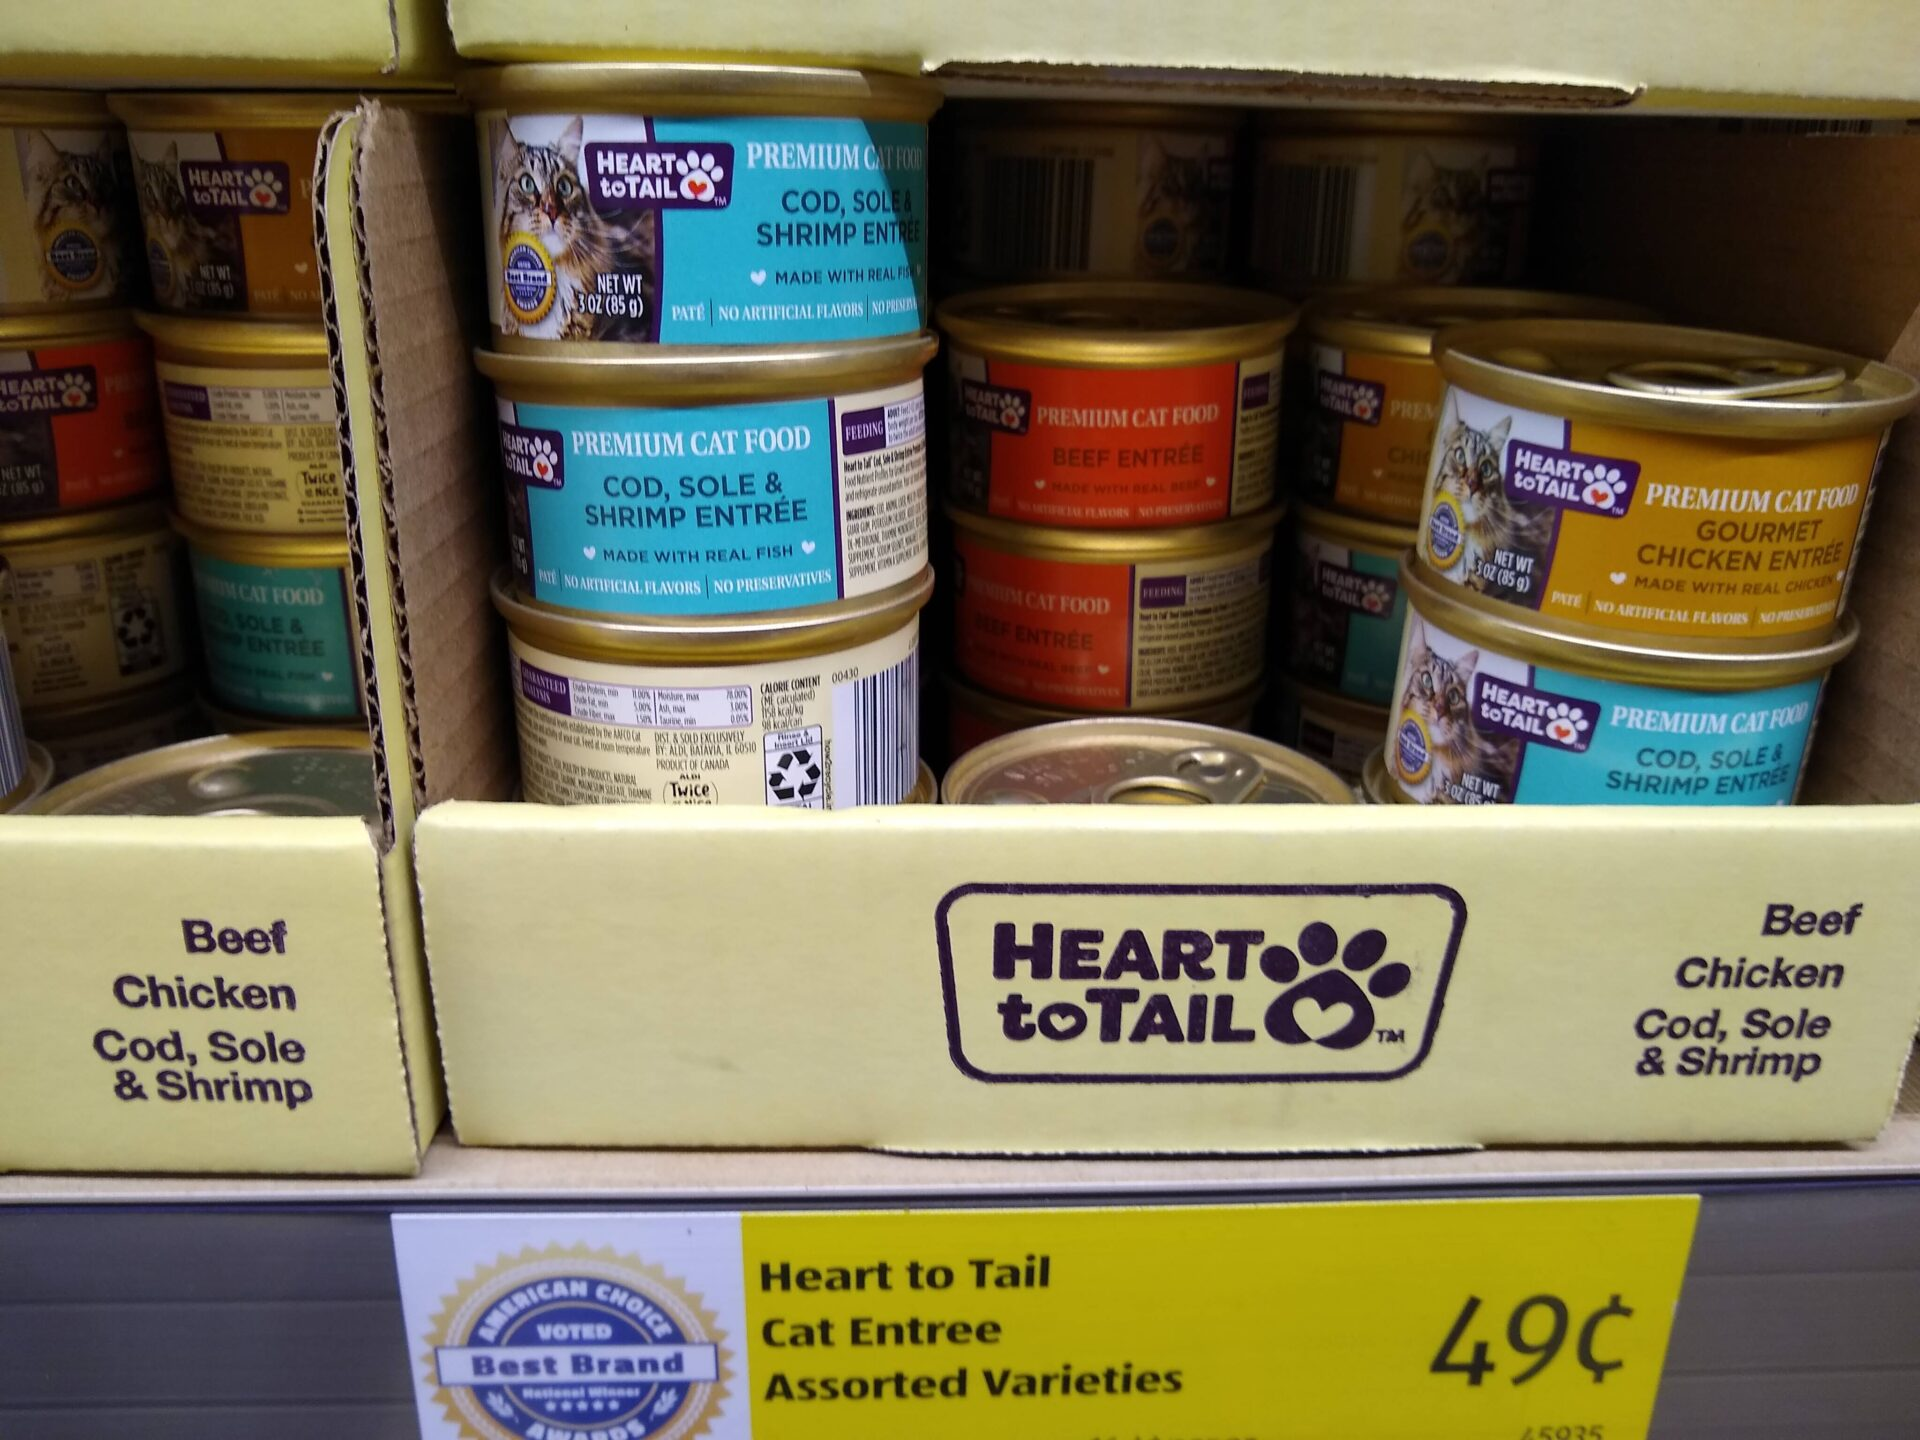 Heart to Tail Premium Canned Cat Food small cans